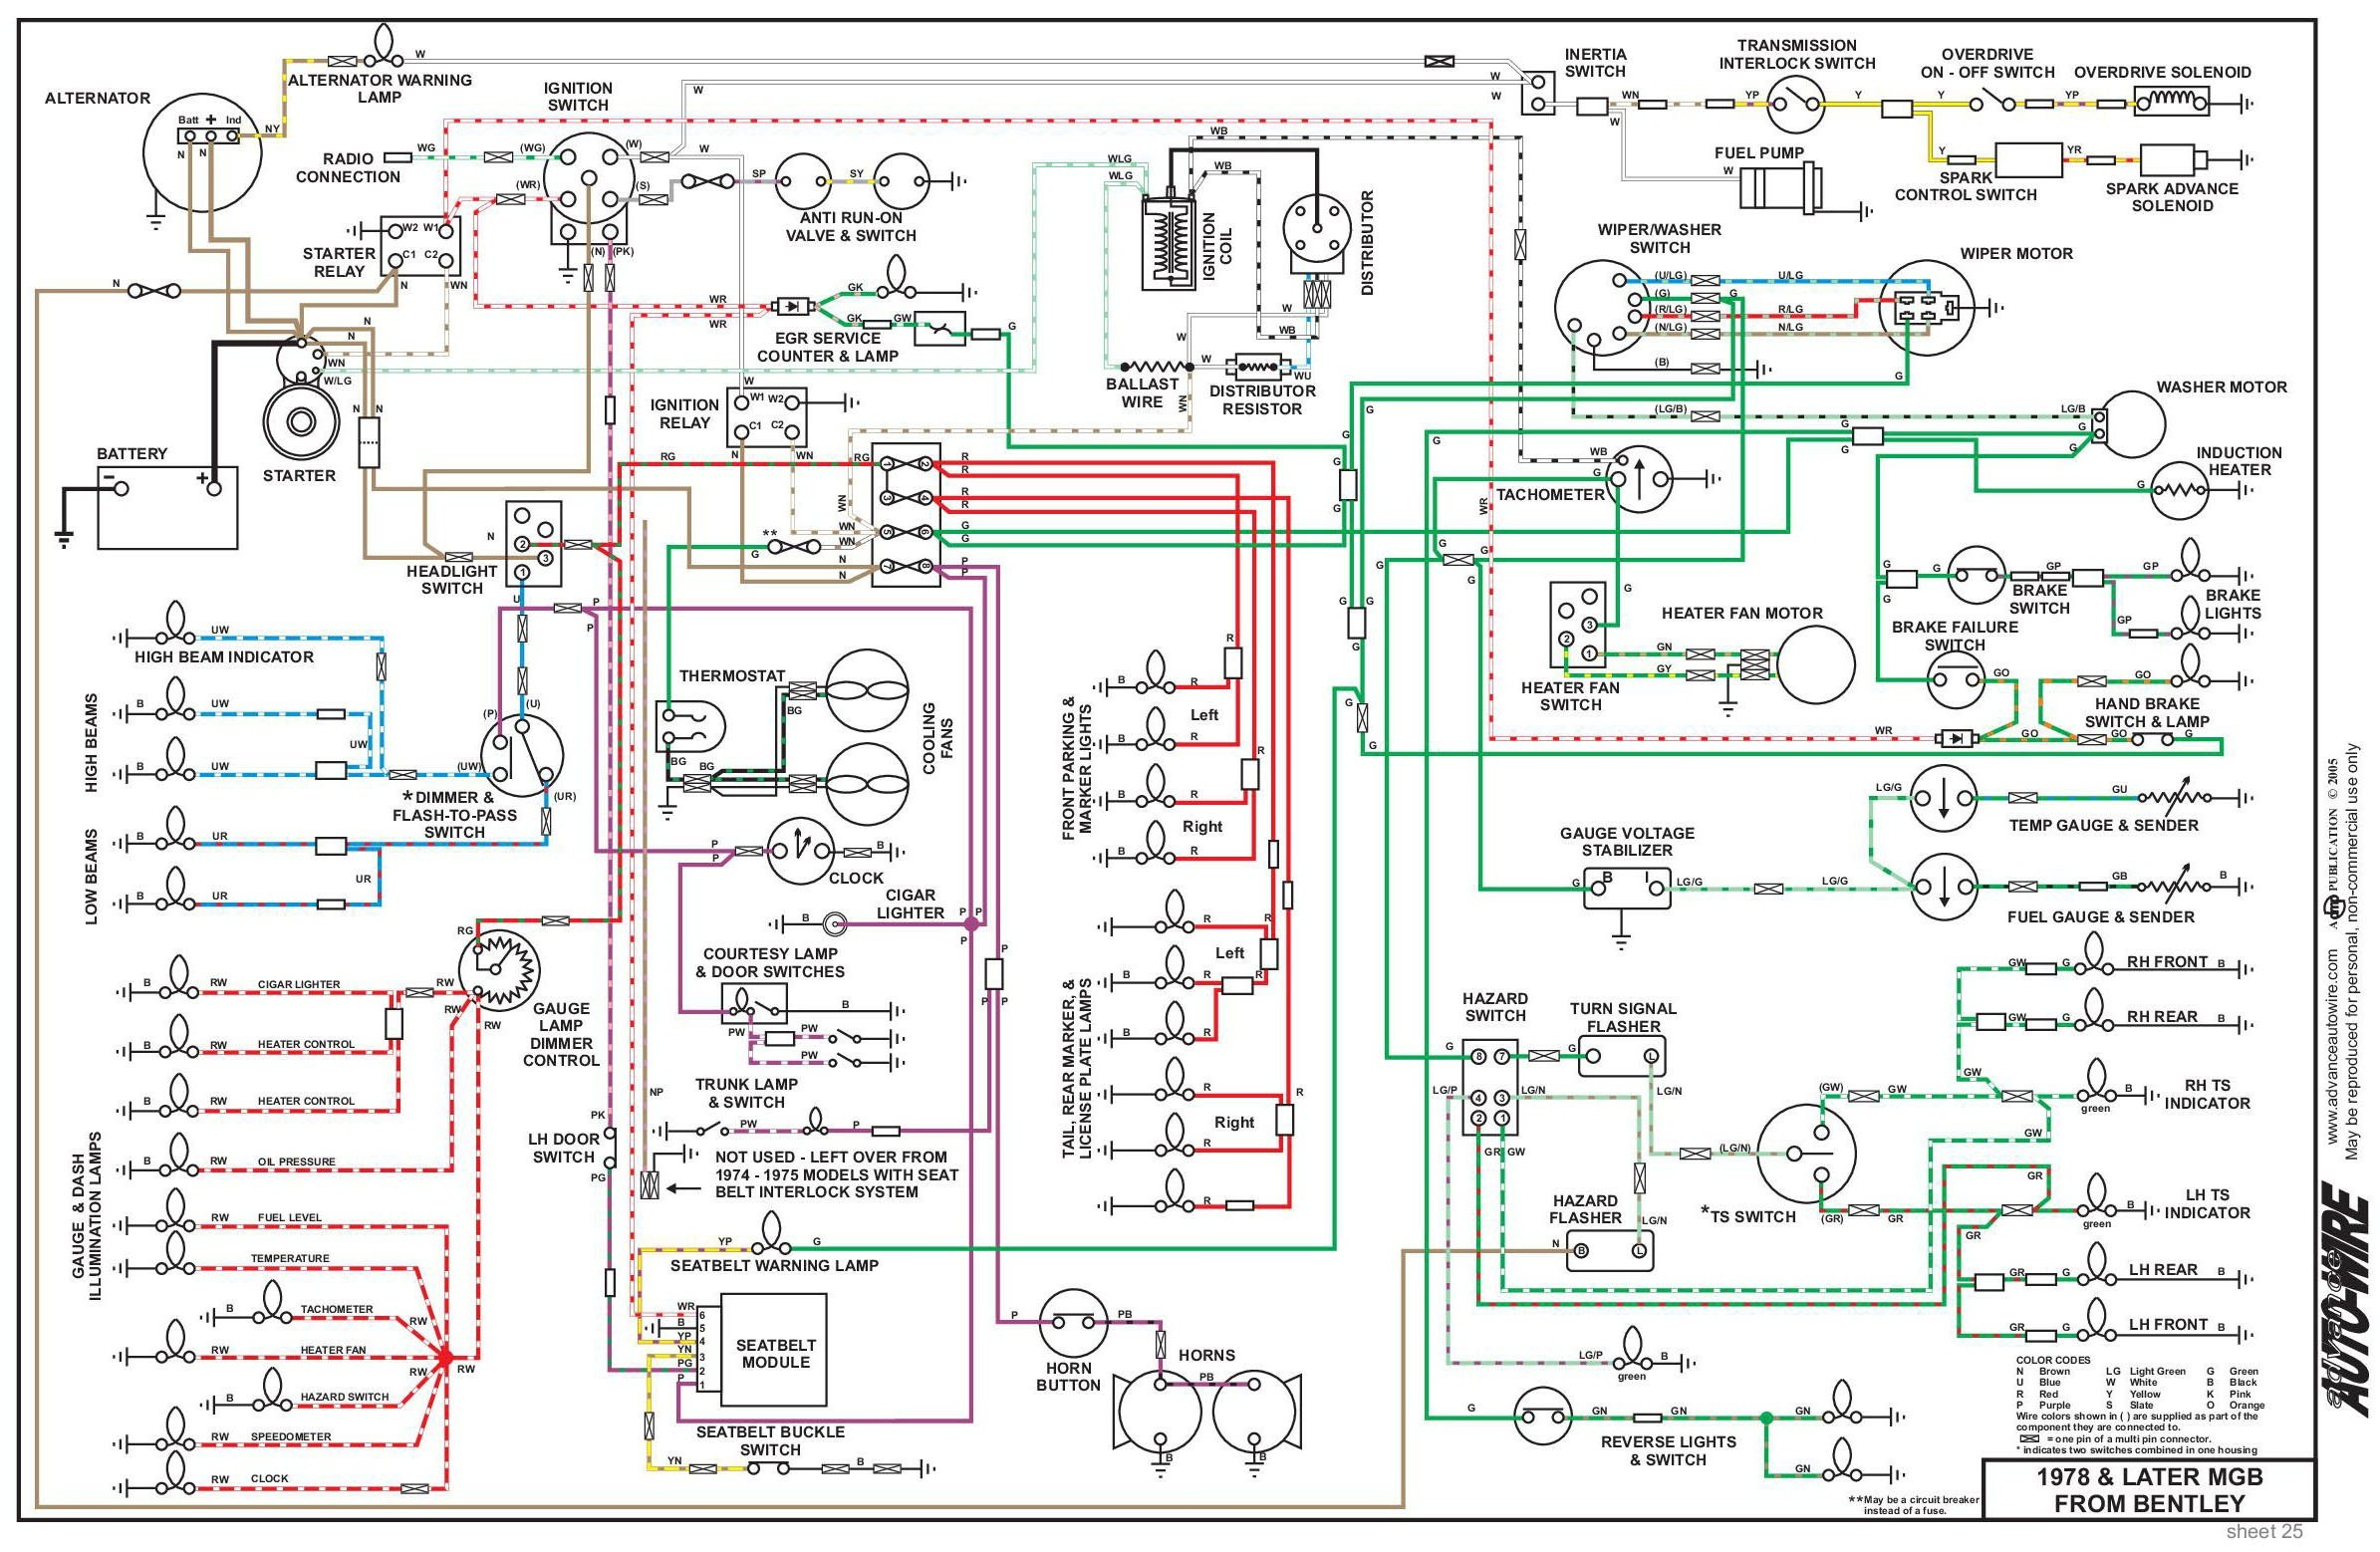 Club Car Engine Parts Diagram Mgb Engine Wiring Another Blog About Wiring Diagram • Of Club Car Engine Parts Diagram Starter Generator Wiring Diagram Golf Cart Reference Wiring Diagrams